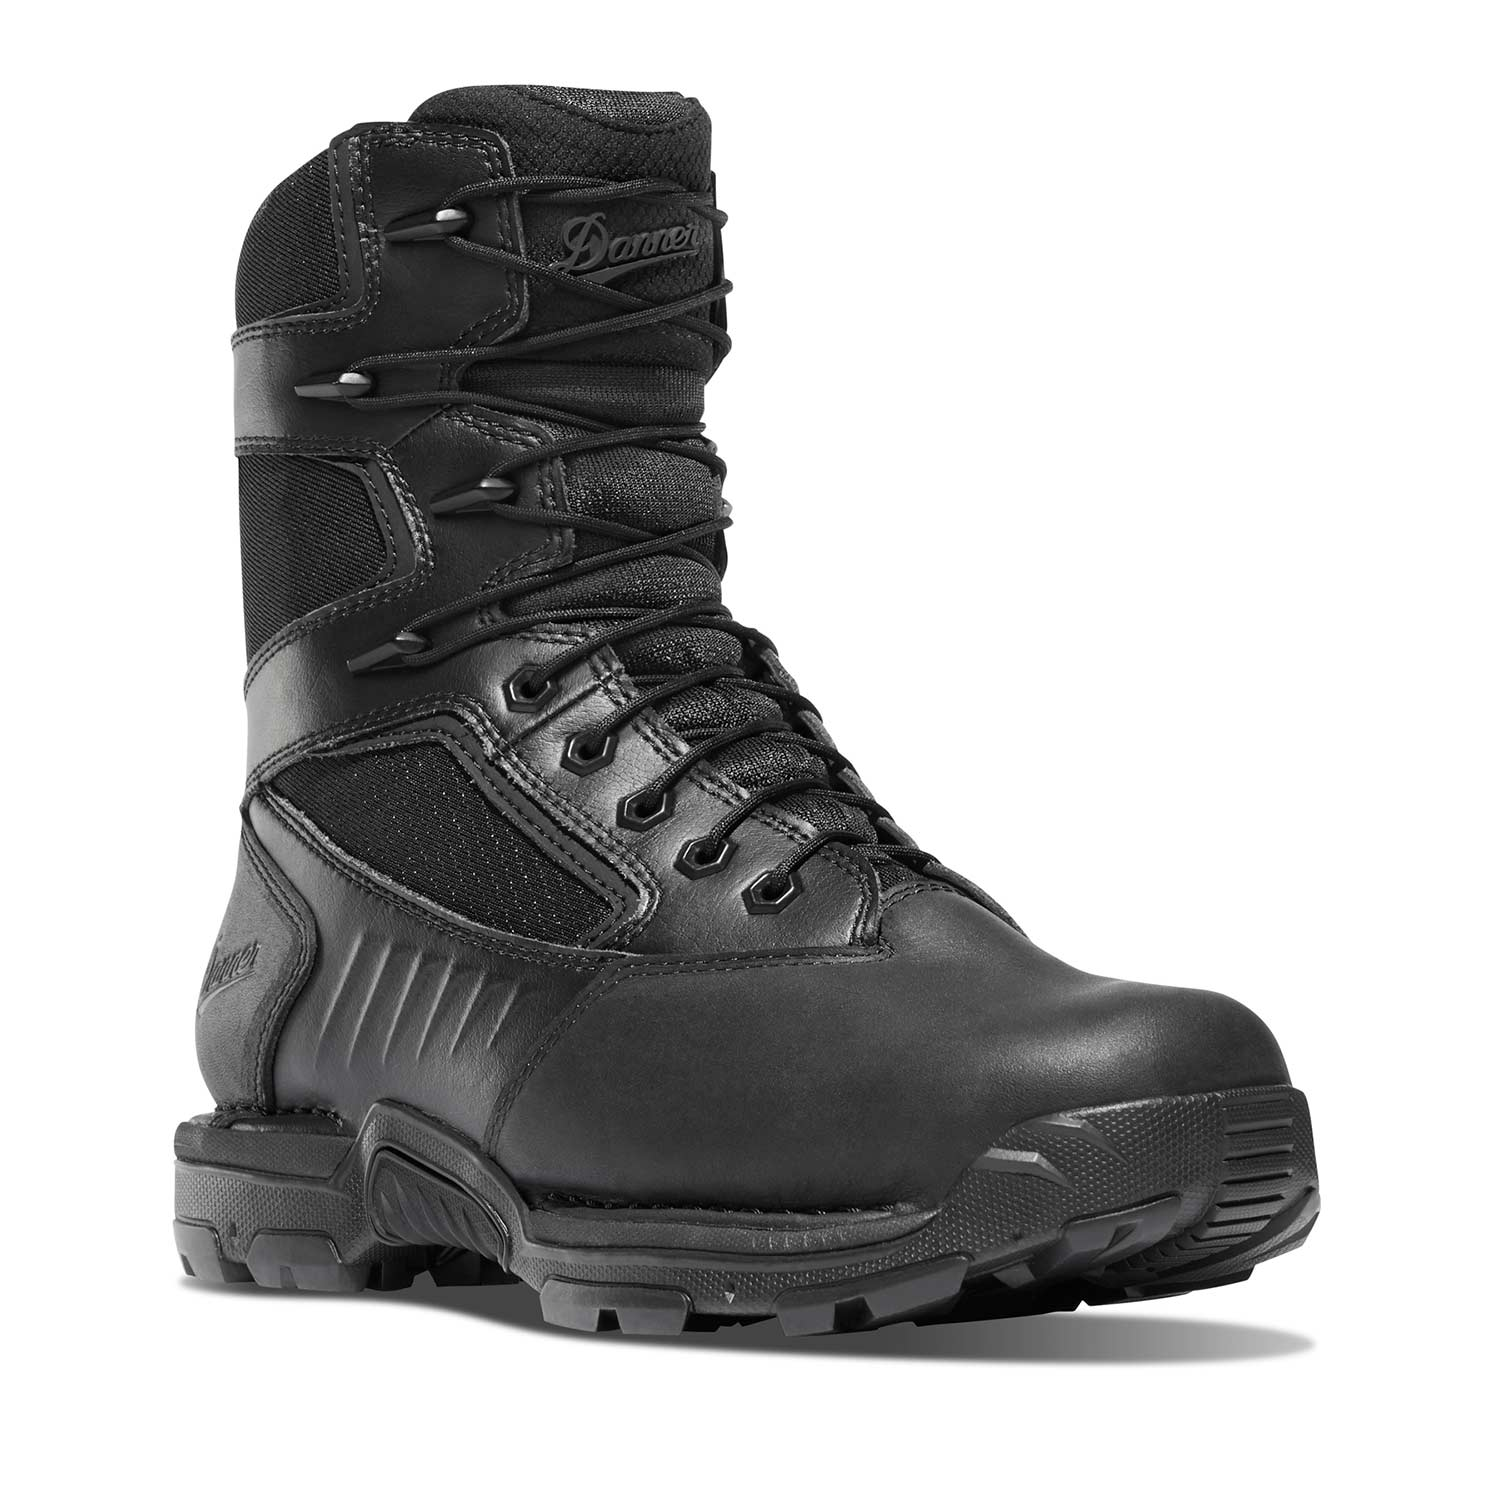 "Danner Striker Bolt 8"" Waterproof Boot"